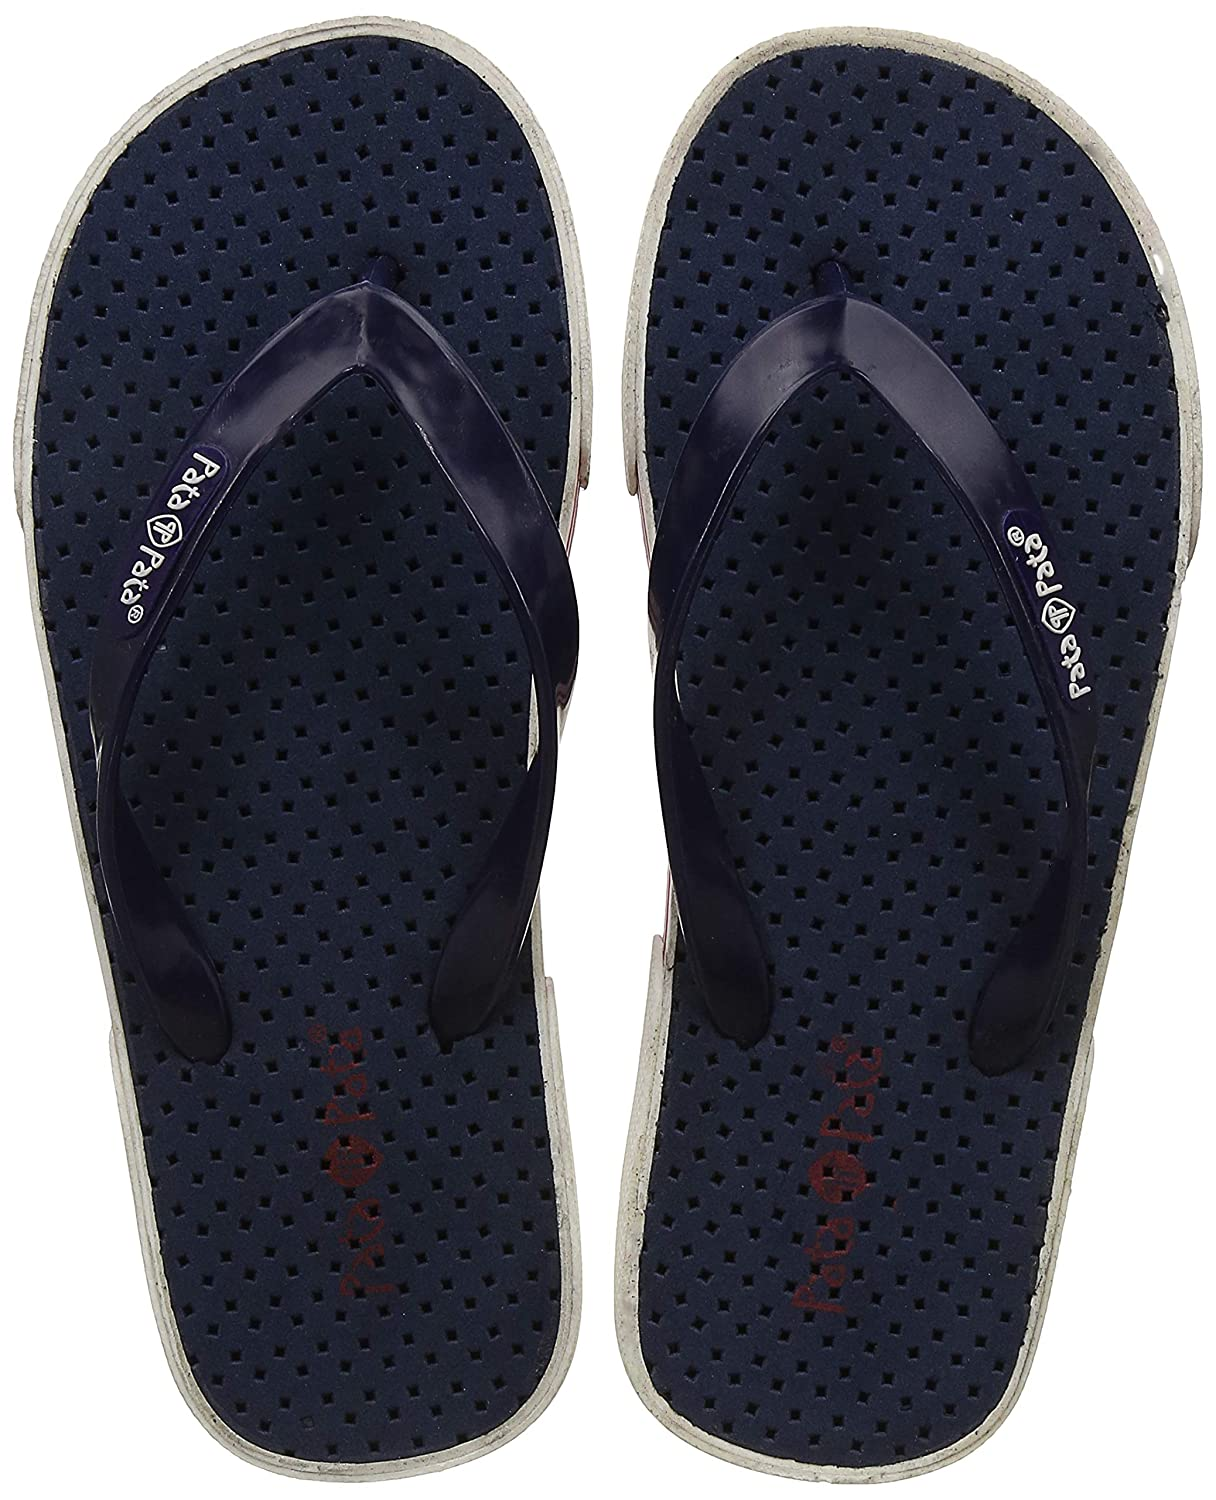 b6f832d5bb5 Pata Pata Men s PLASMA Blue Flip Flops Thong Sandals - 8(8719036)  Buy  Online at Low Prices in India - Amazon.in